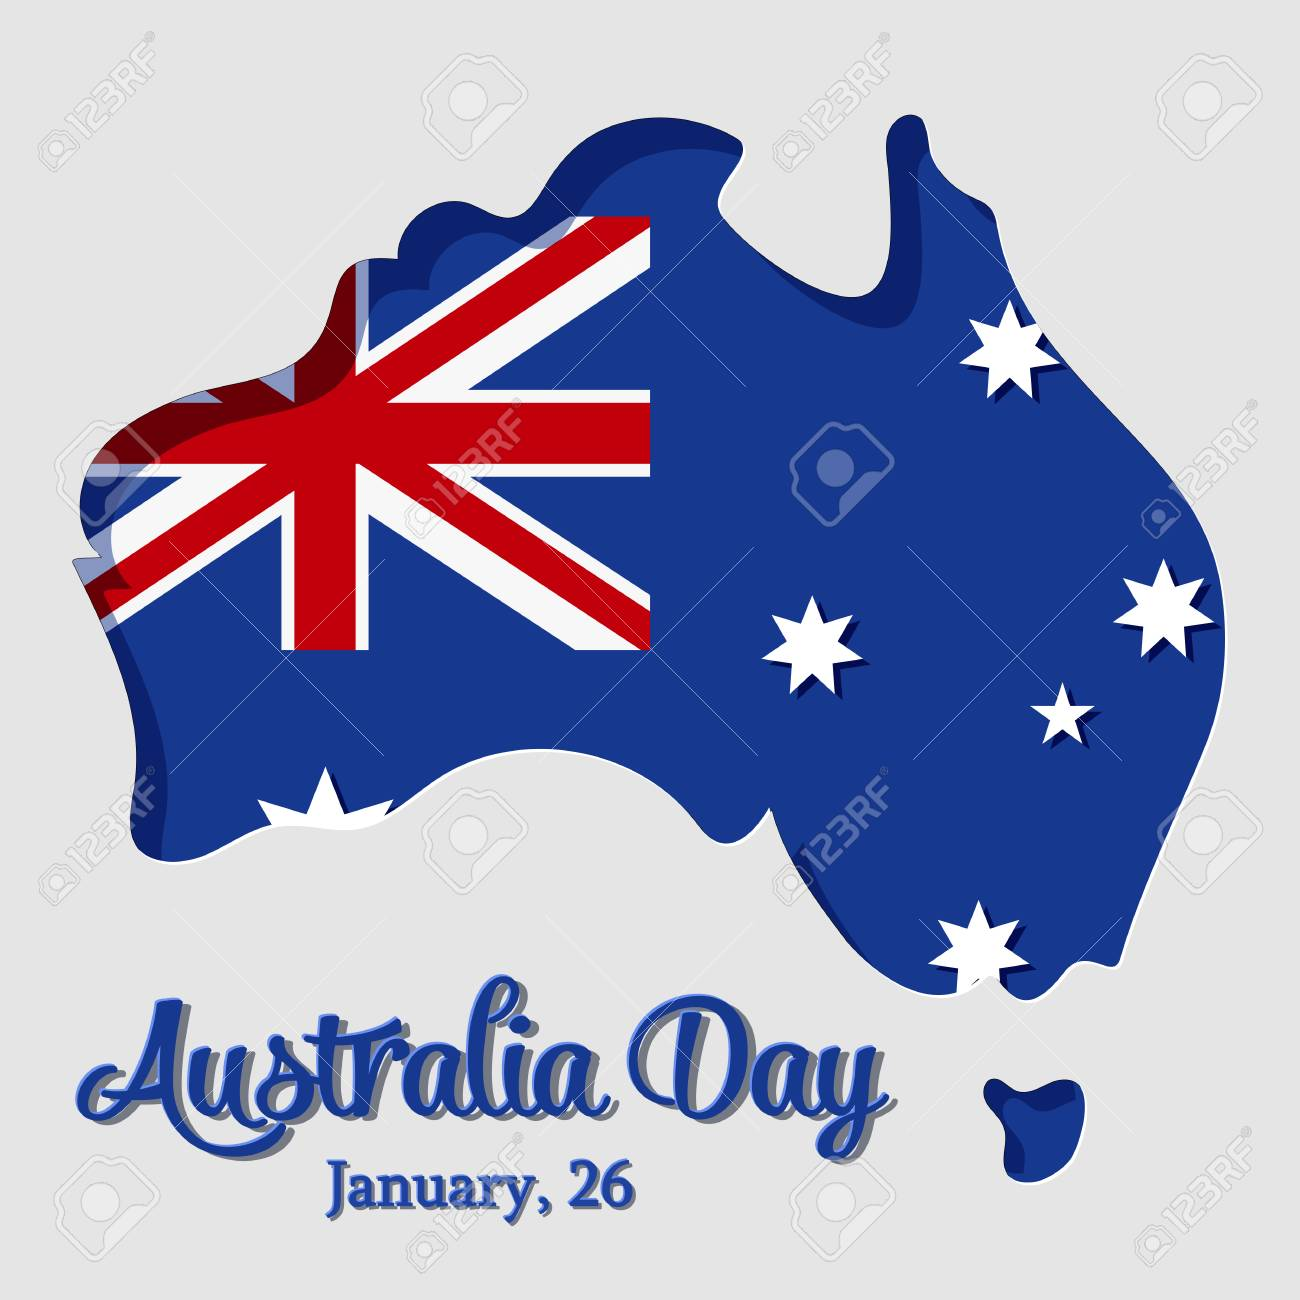 Happy australia day greeting card with map and flag in paper stock happy australia day greeting card with map and flag in paper art and craft style m4hsunfo